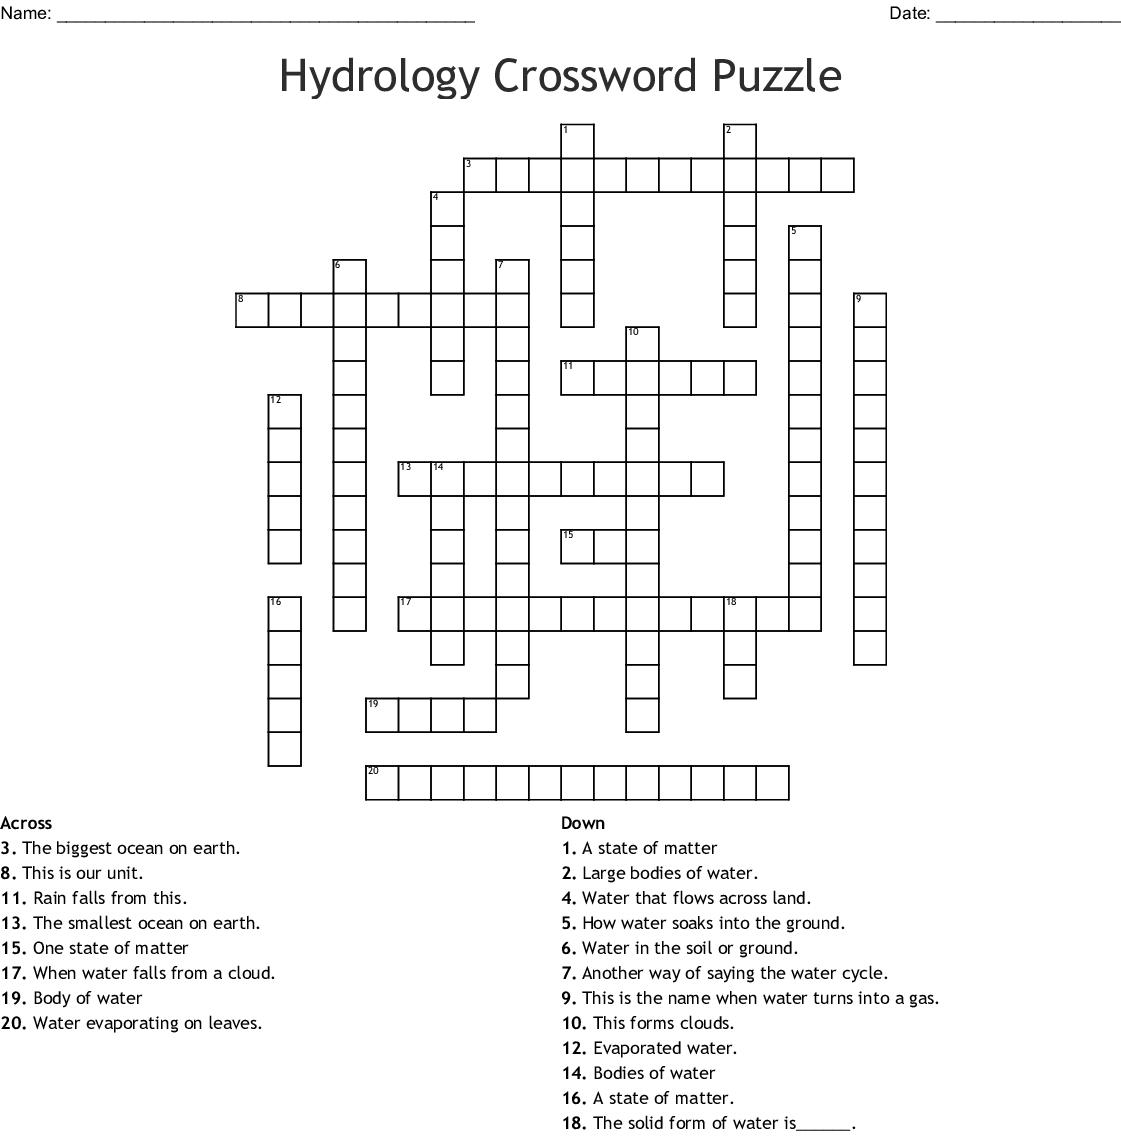 Hydrology Crossword Puzzle Crossword